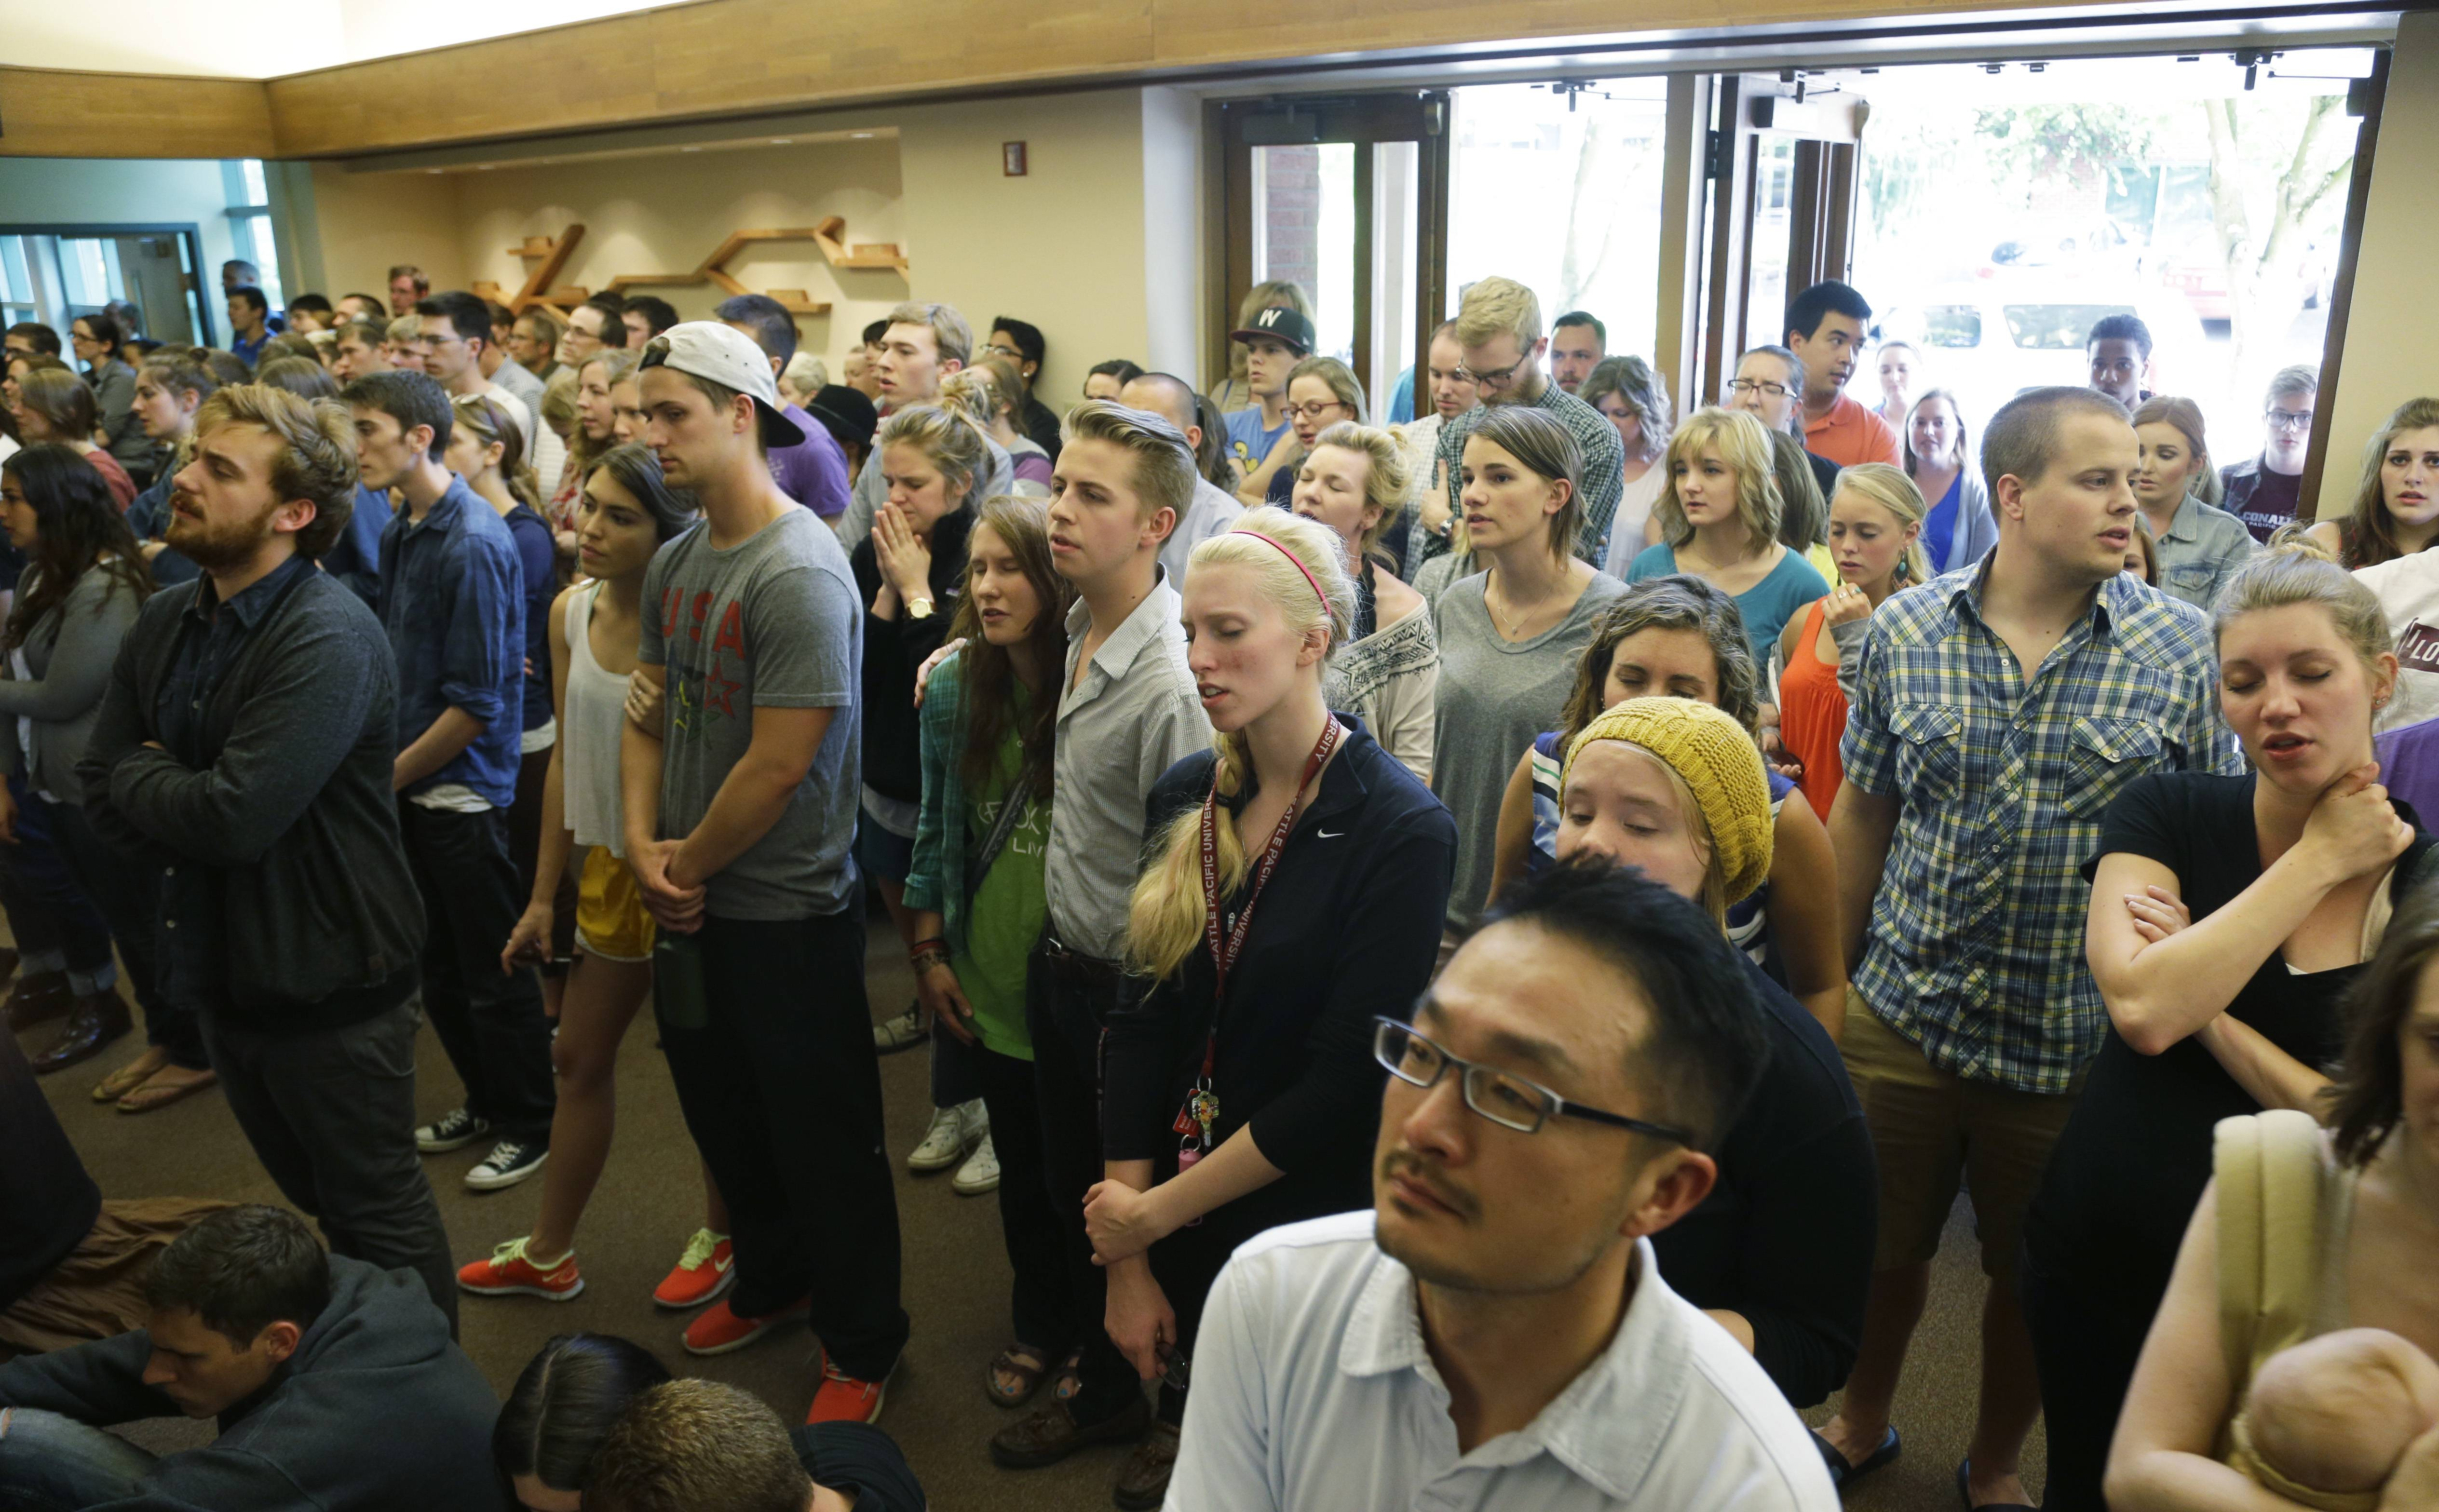 People stand in the foyer during a prayer service at the First Free Methodist Church Thursday at Seattle Pacific University in Seattle, where a shooting took place Thursday afternoon.